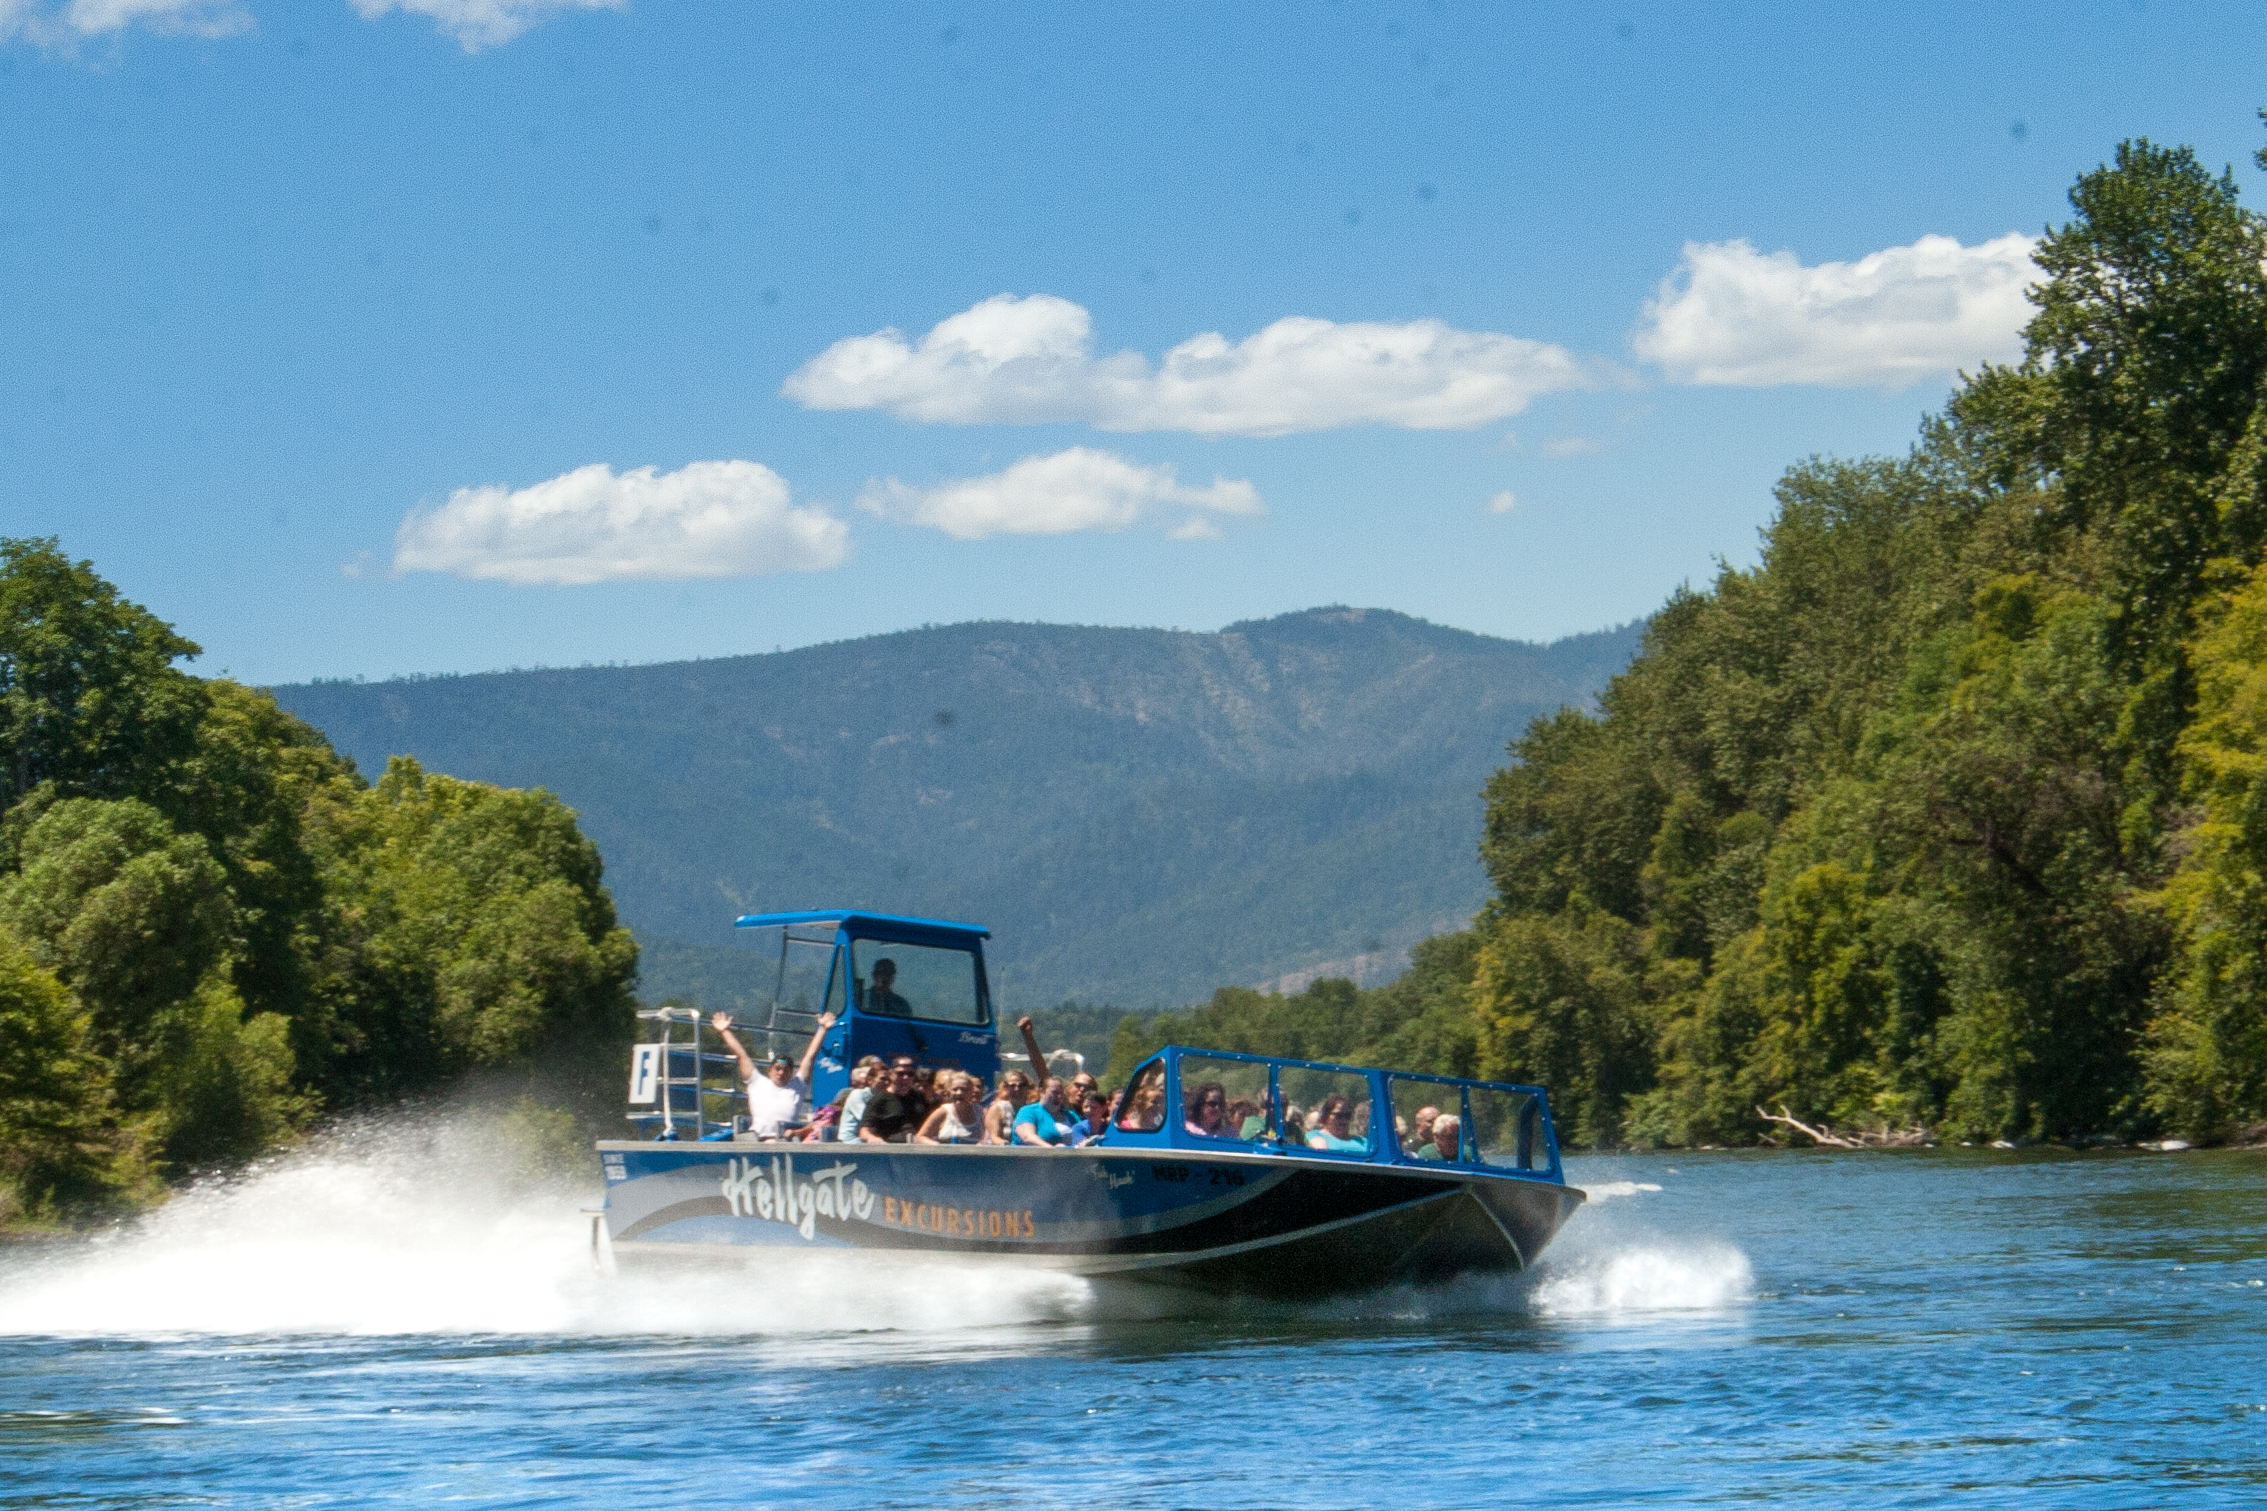 Hellgate Jetboat Excursion tours run May through September every year!